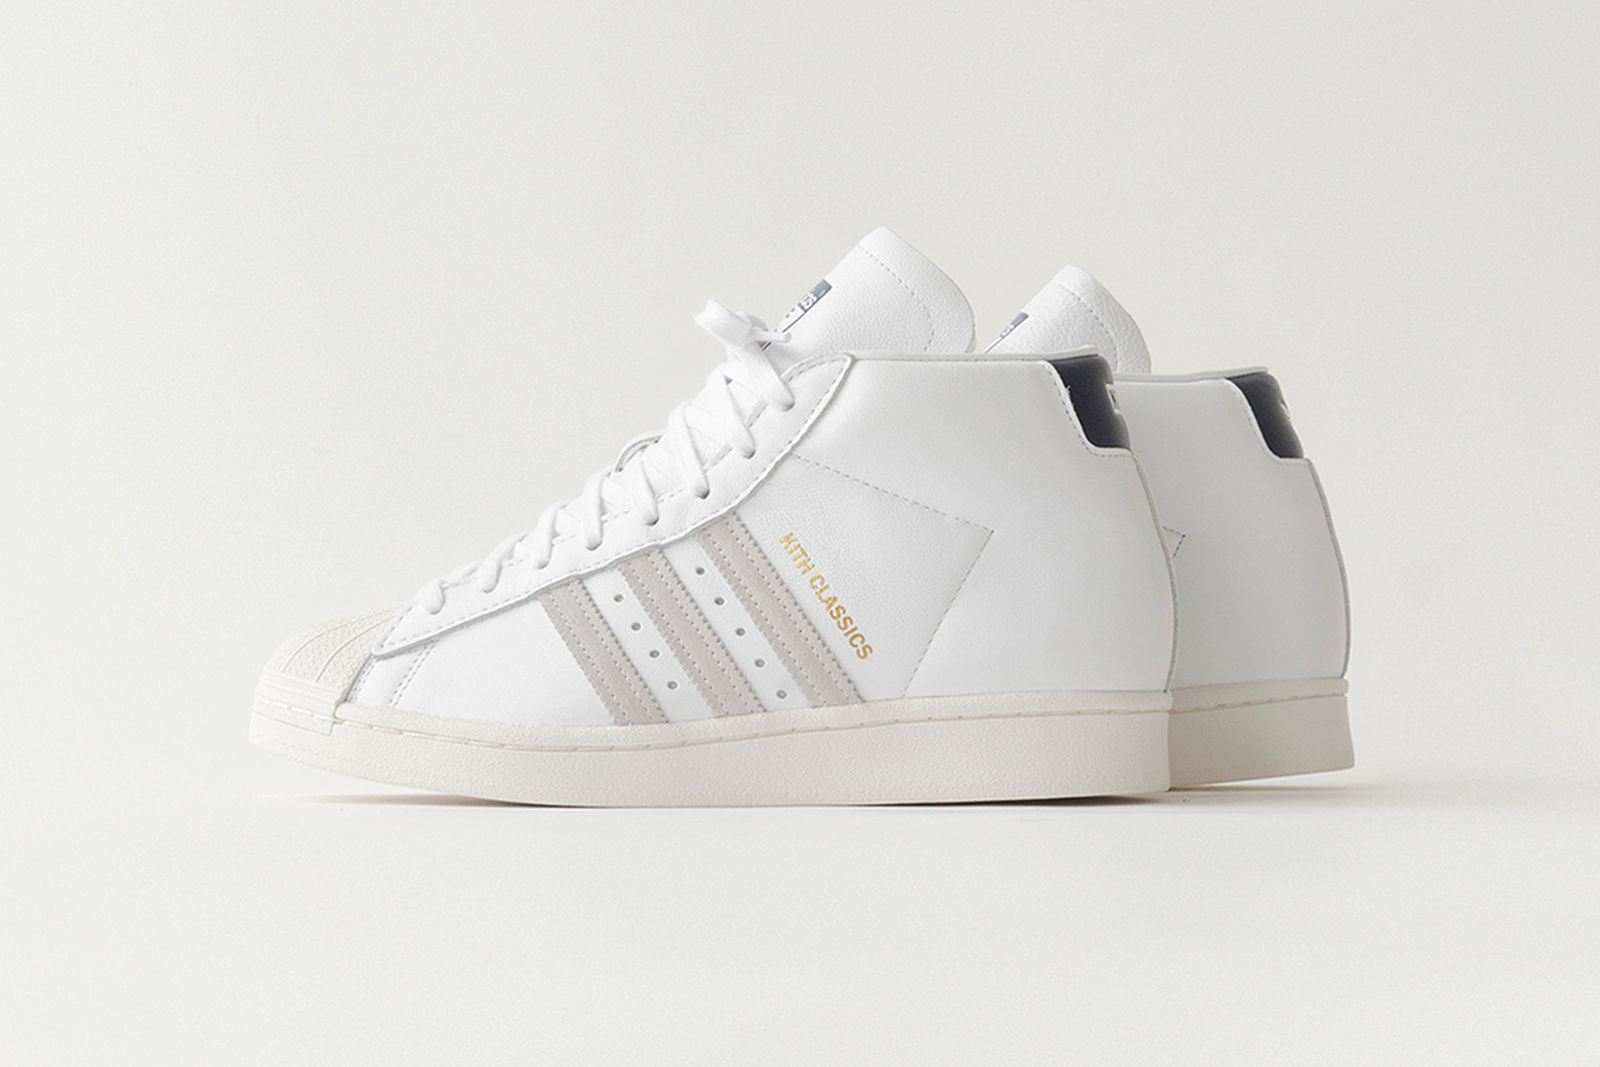 kith-adidas-summer-2021-release-info-22